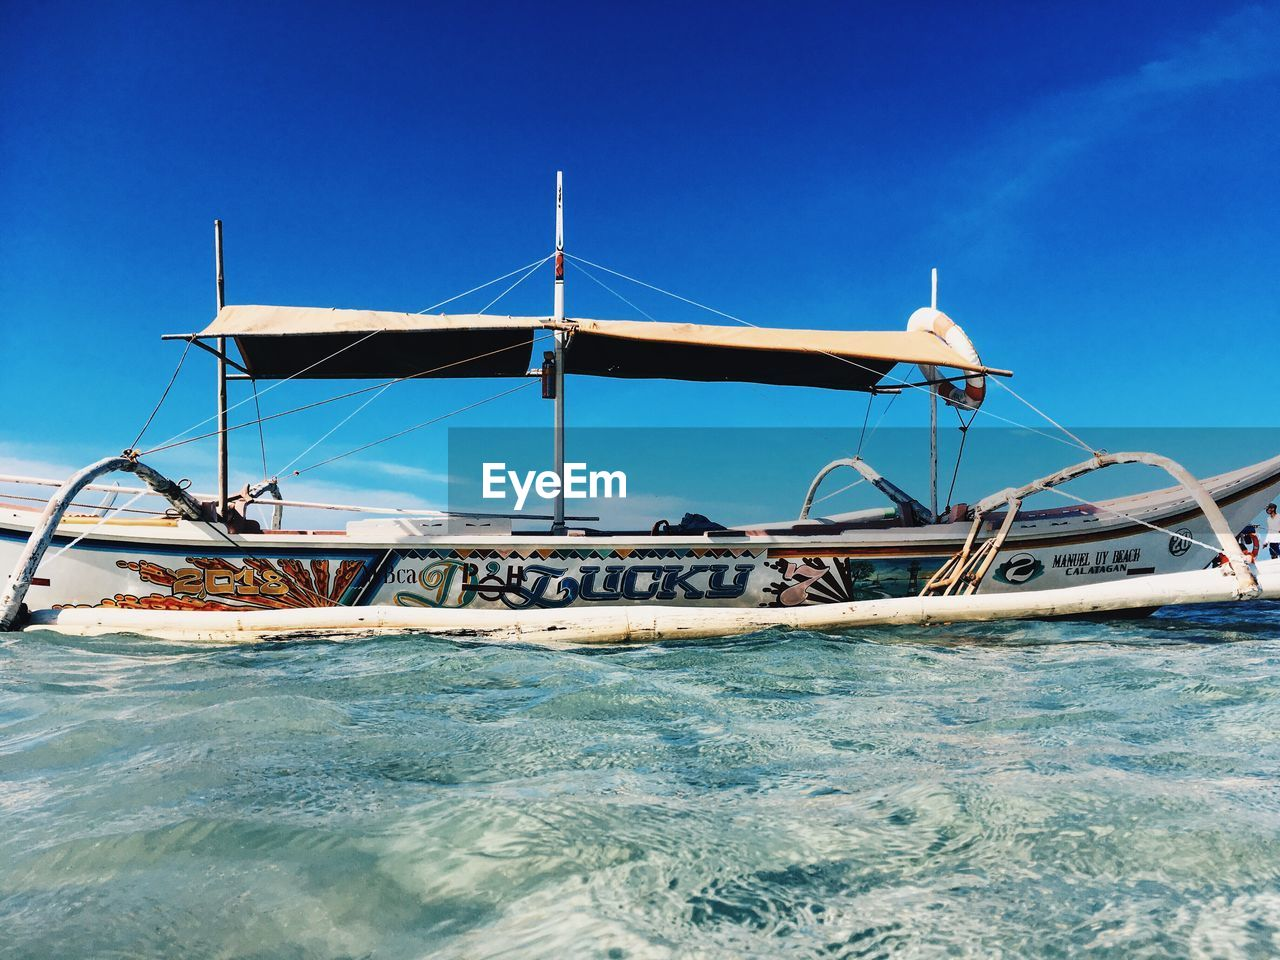 water, nautical vessel, sea, sky, transportation, mode of transportation, nature, day, waterfront, clear sky, blue, no people, travel, sunlight, beauty in nature, outdoors, sailboat, moored, scenics - nature, yacht, fishing boat